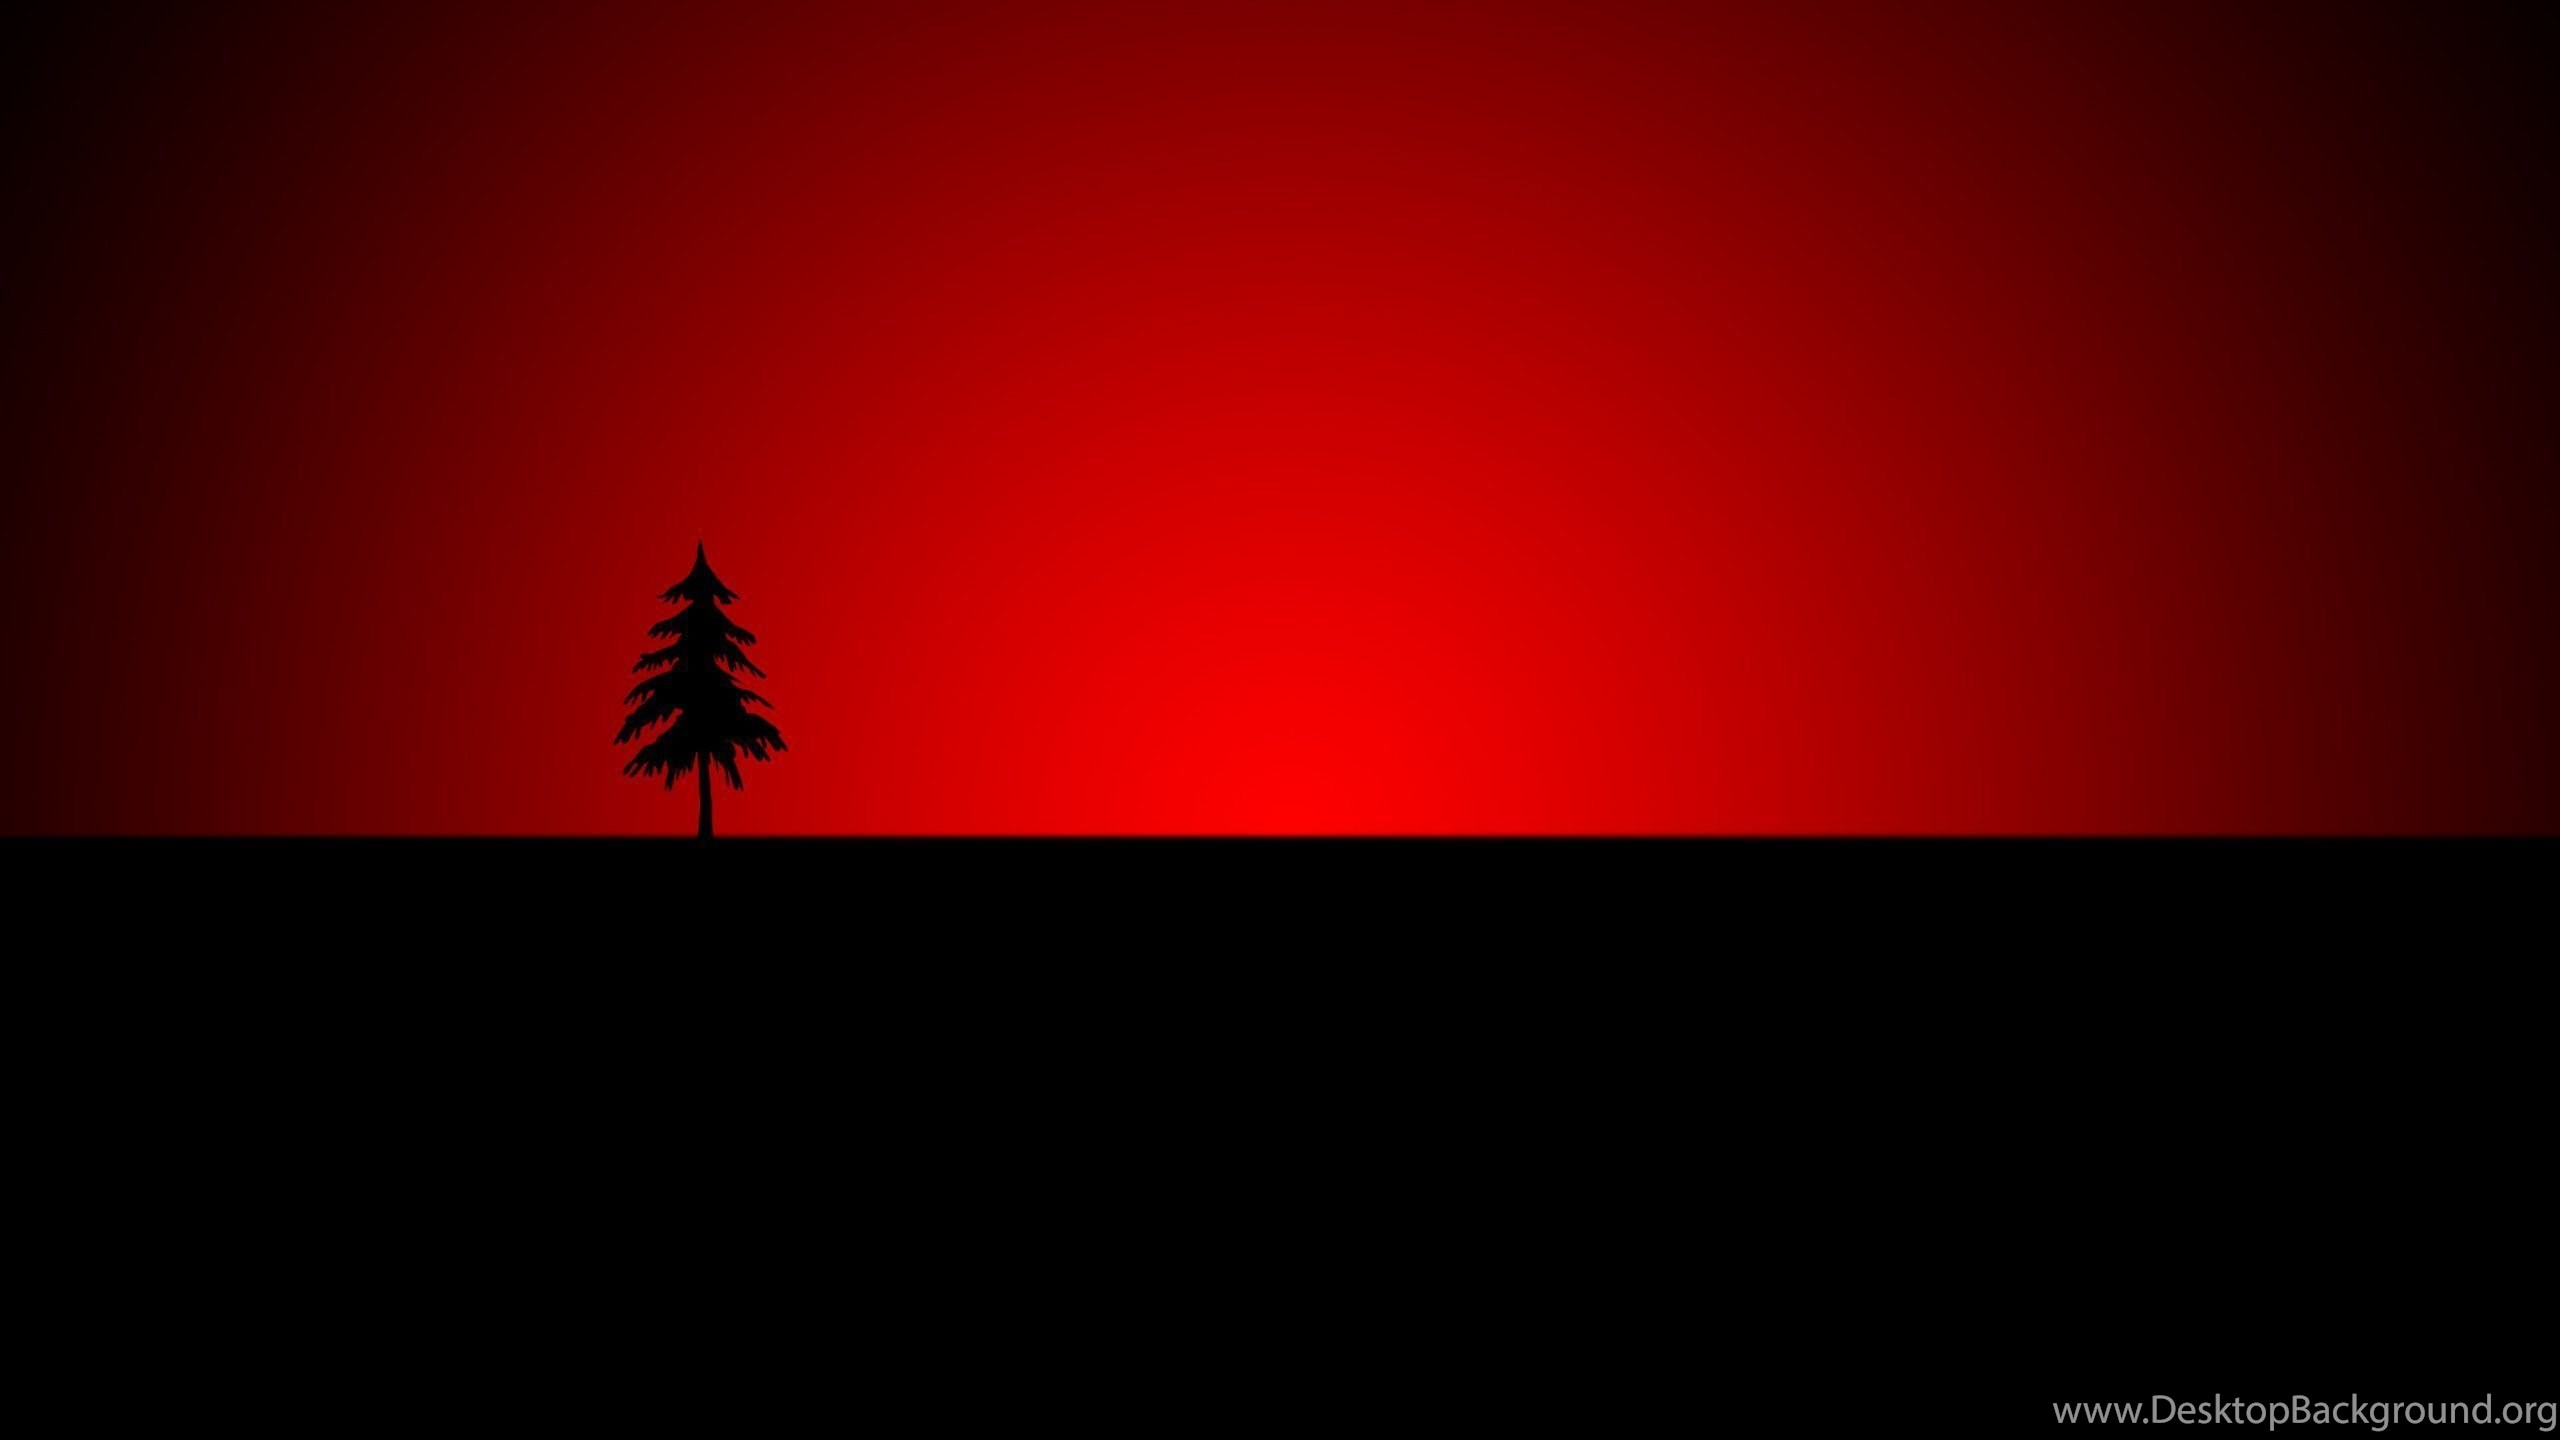 Hd Quality Cool Red And Black Desktop Wallpapers Hd 6 Siwallpapers Desktop Background